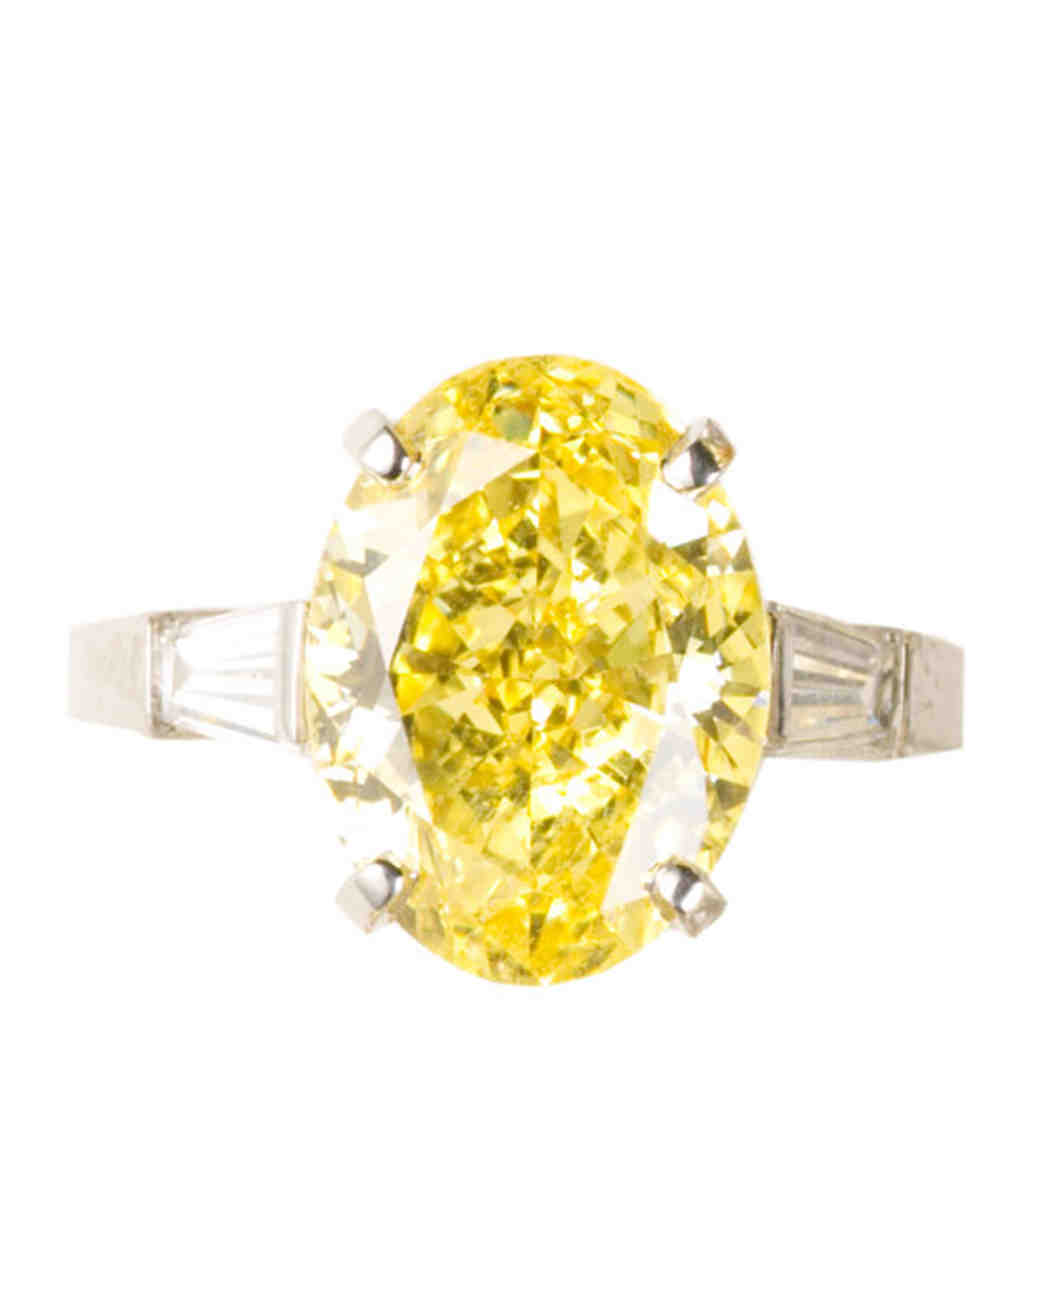 msw_sum10_yellow_ring_bulgari.jpg